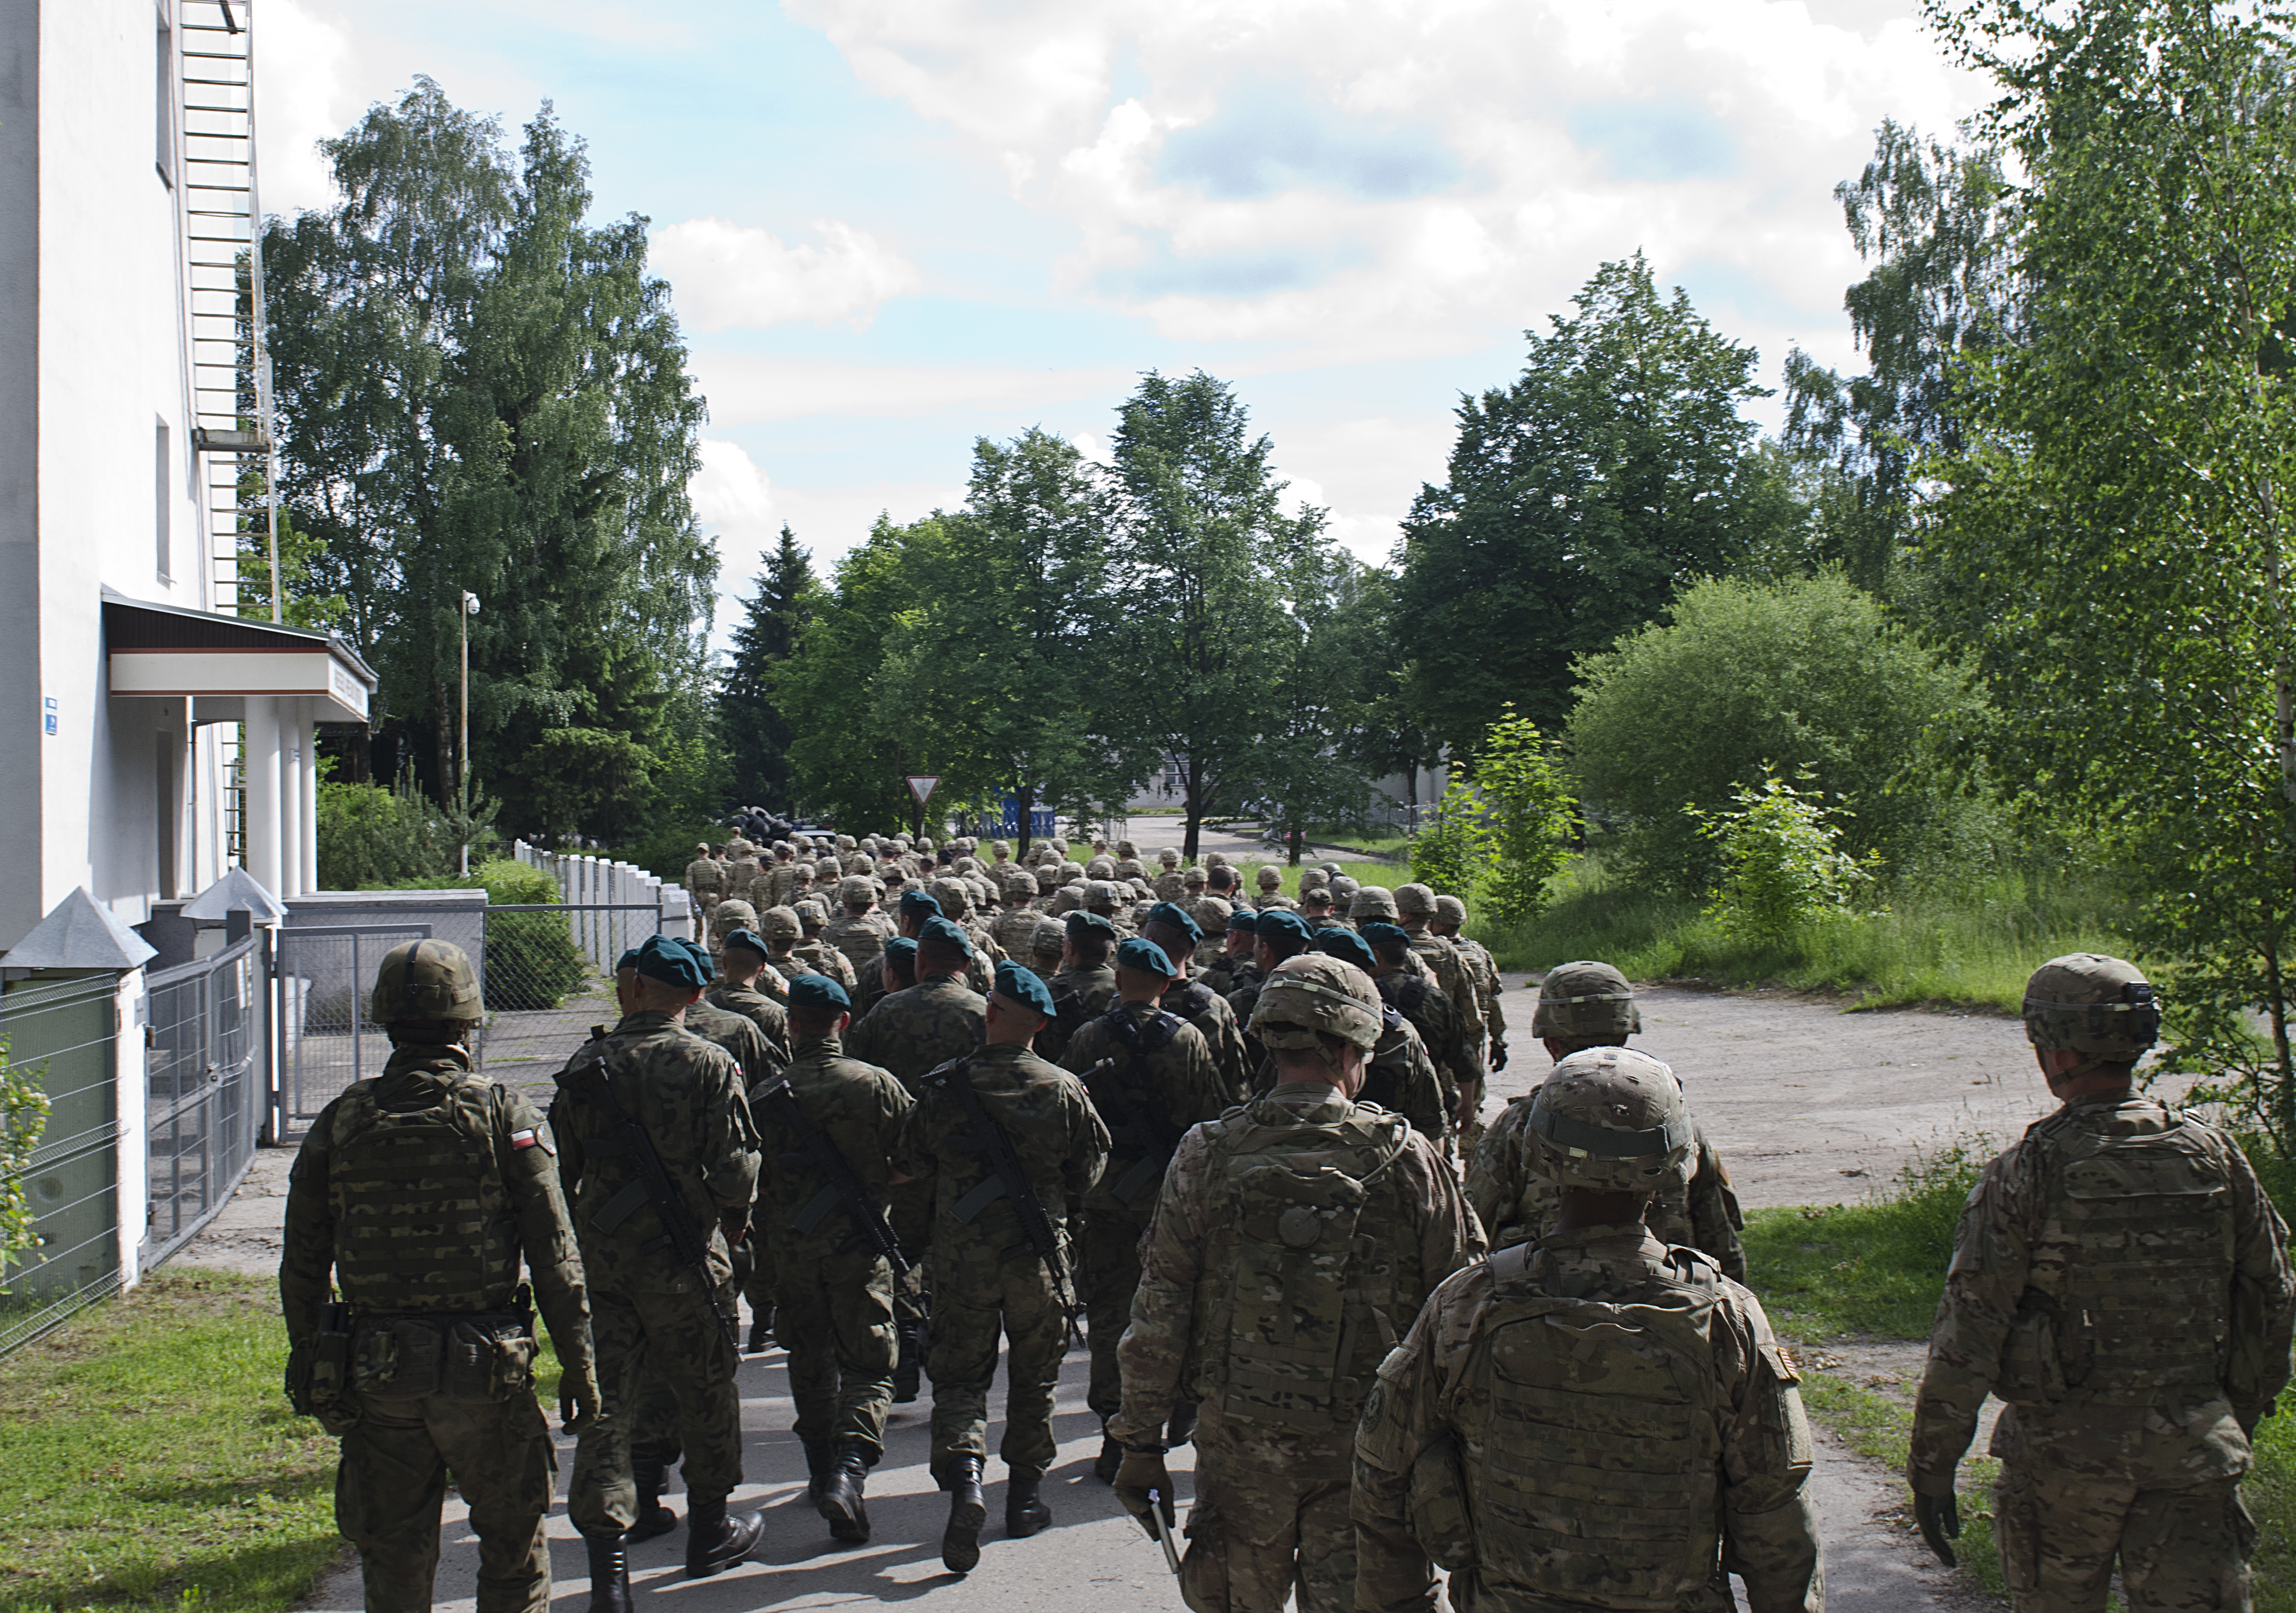 Once all equipment and personnel was accounted for, the Battle Group Soldiers attended a reception brief in Rukla, Lithuania after a two-day tactical road march across Eastern Europe, June 18, 2017, as part of Saber Strike 17. The Poland-based Battle Group conducted the convoy portion of the Field Training Exercise to demonstrate their ability to execute a forward passage of lines across the only land connection between the Baltic States of Estonia, Latvia and Lithuania, which is known as the Suwalki Gap. (U.S. Army photo by Sgt. Justin Geiger)